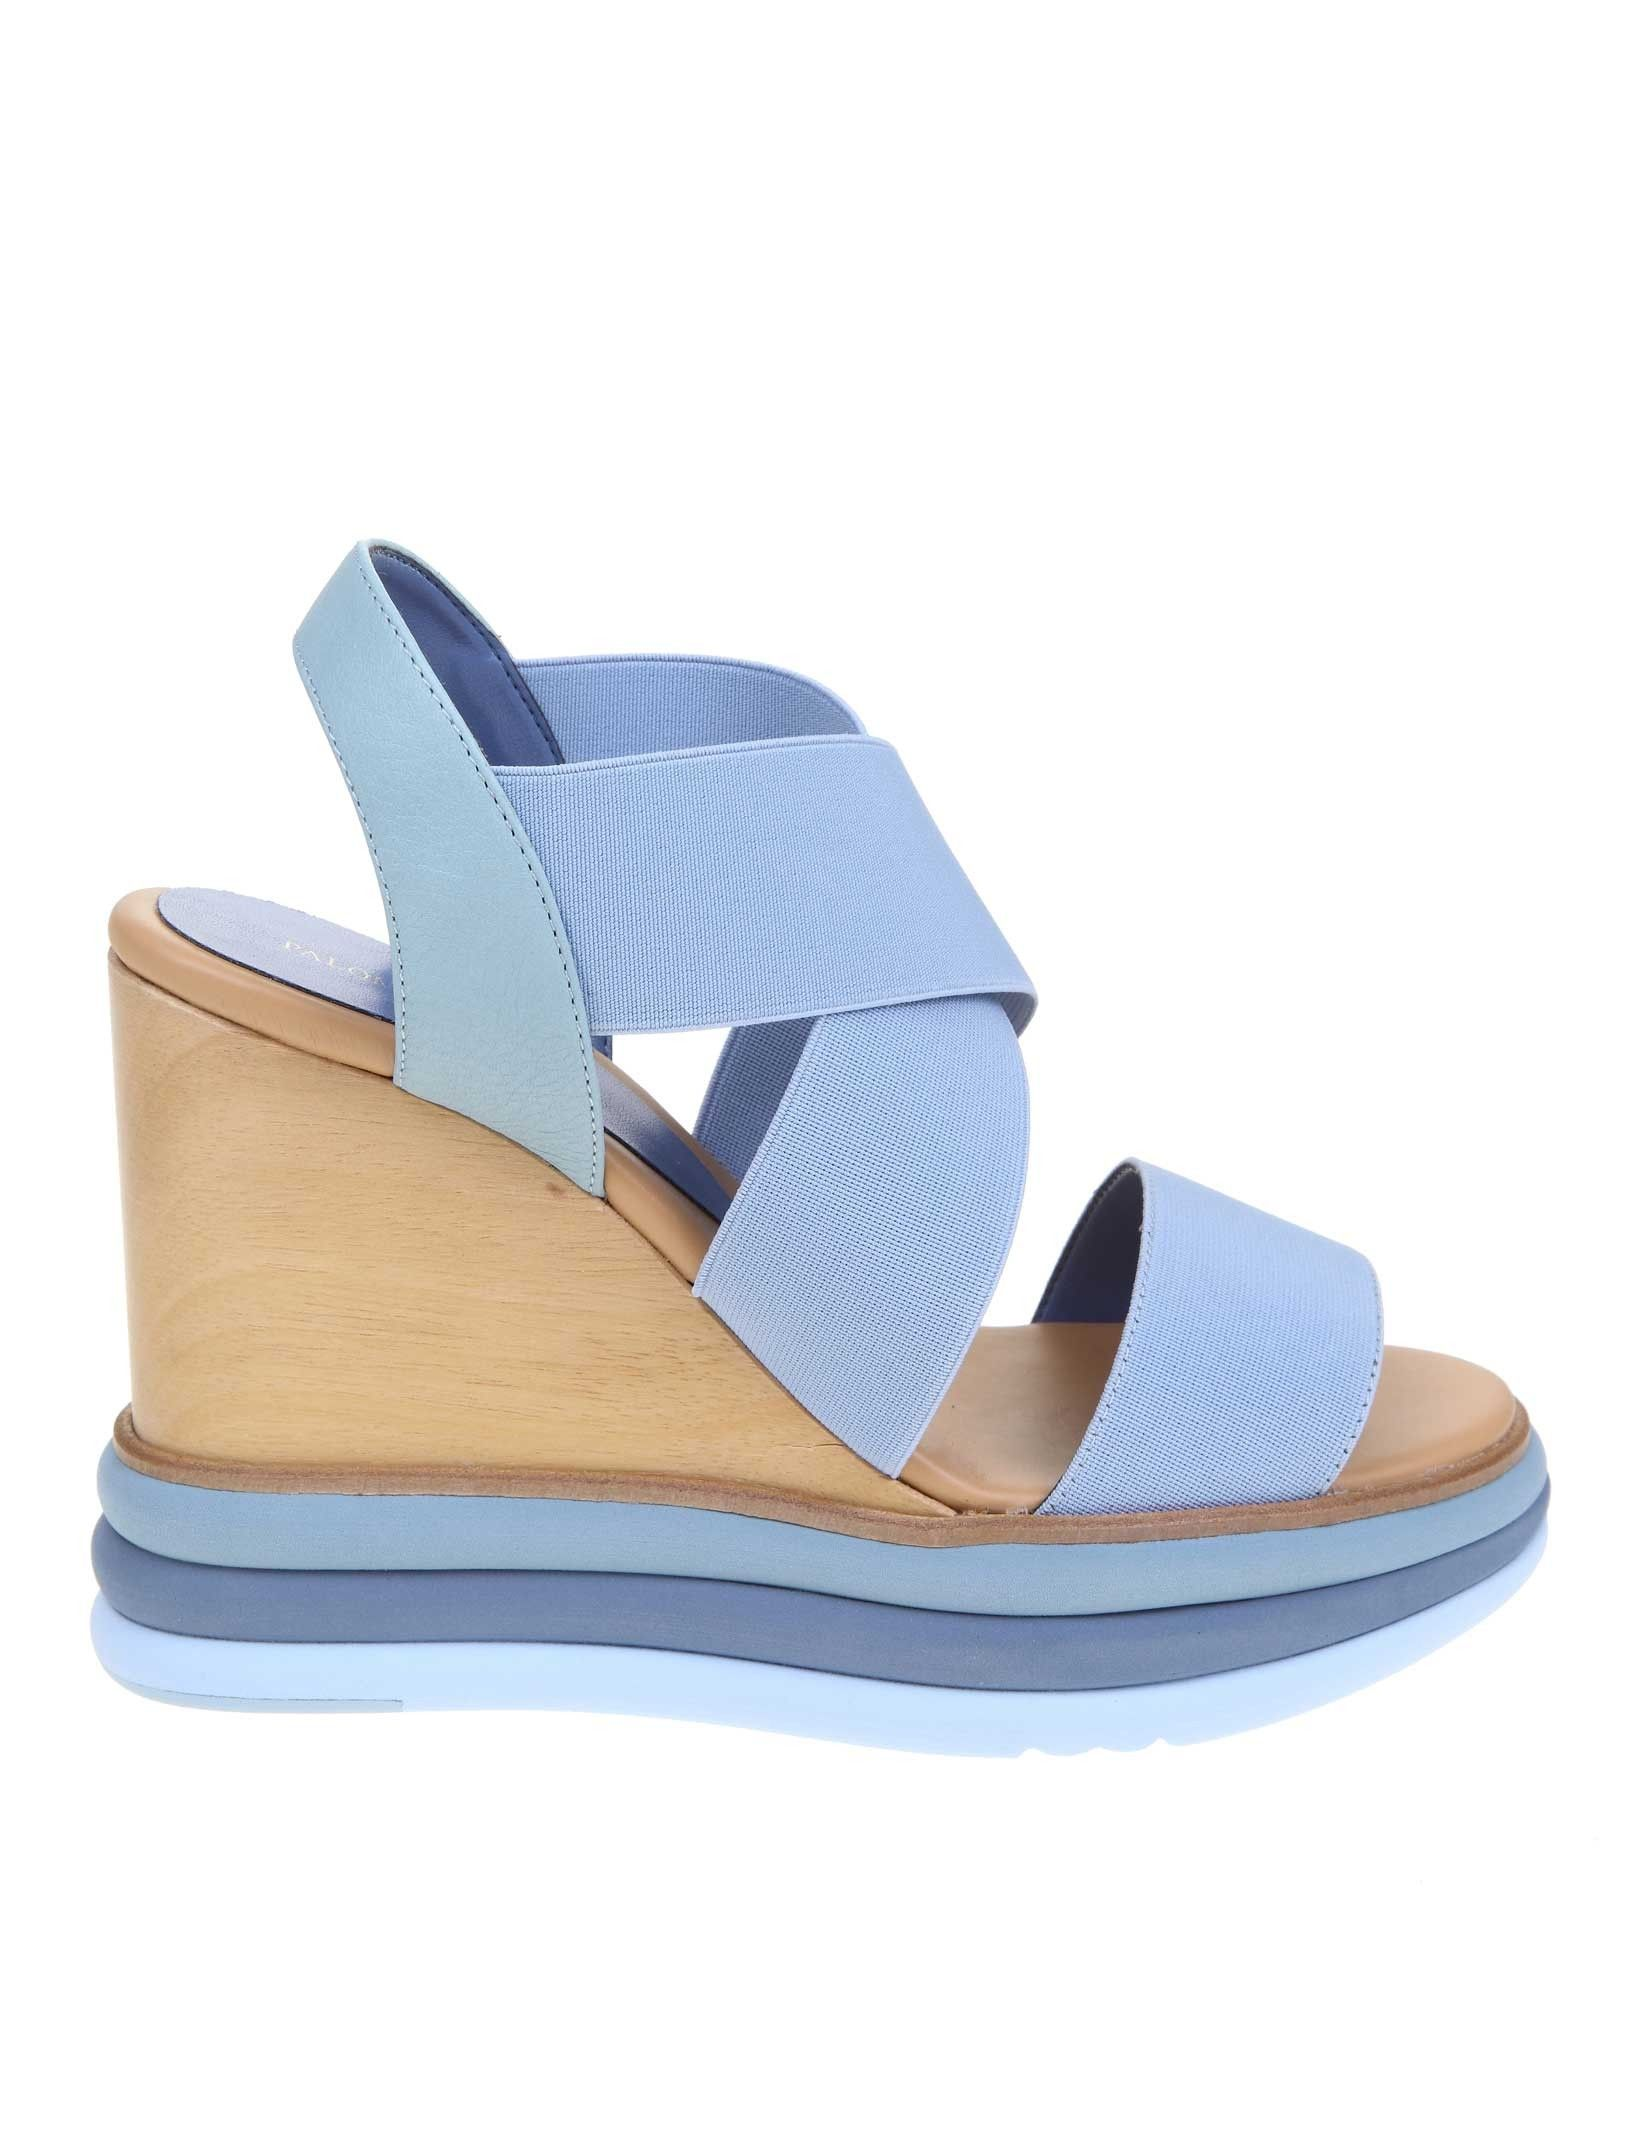 Paloma Barceló LIGHT BLUE FABRIC WEDGES